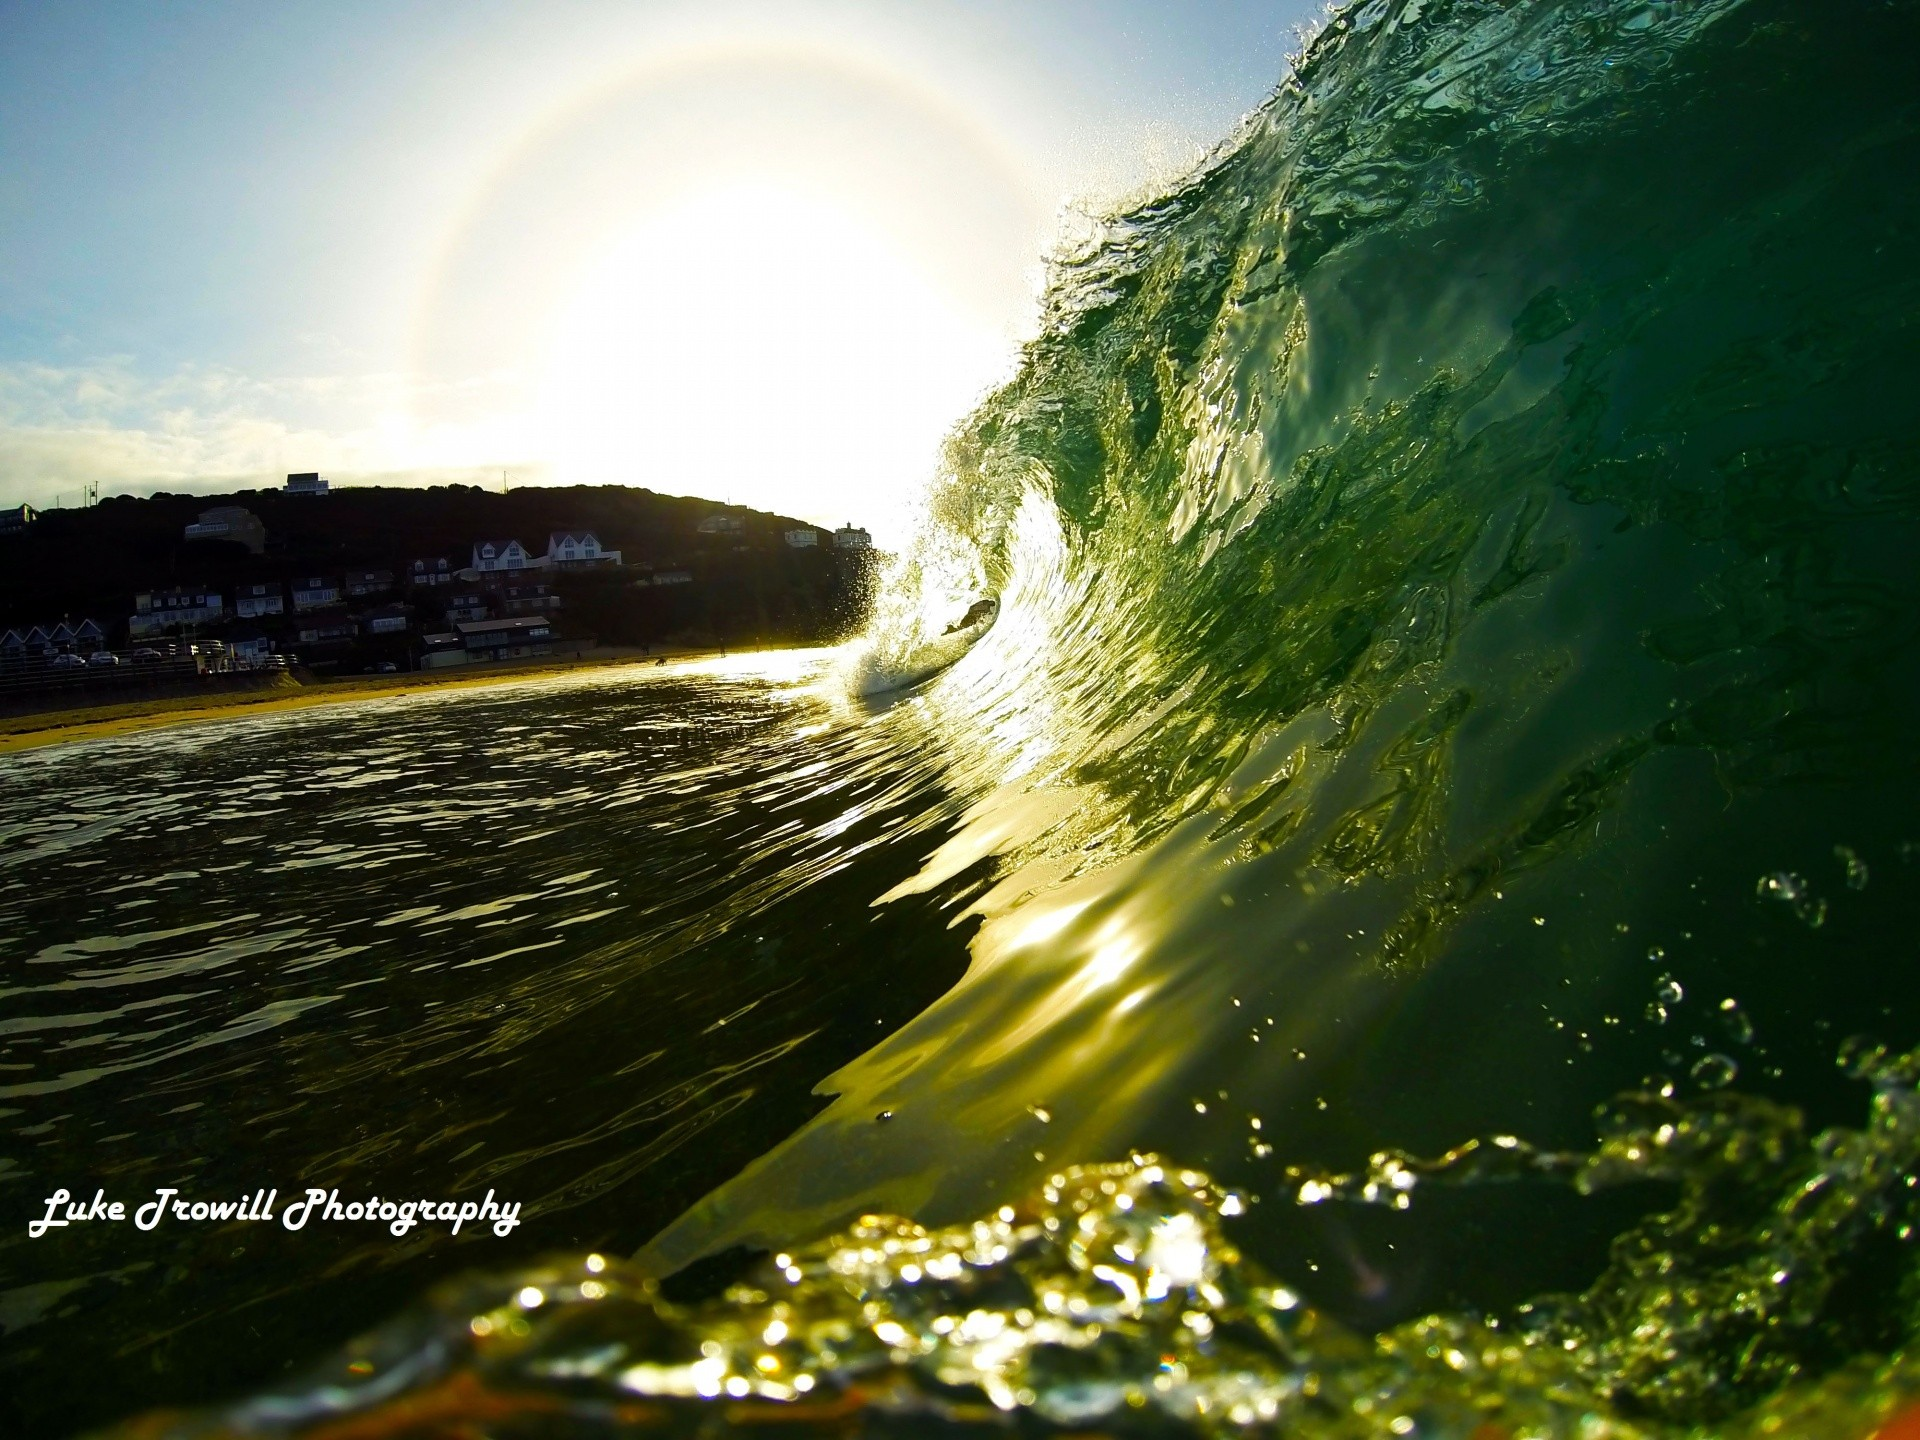 Lukes Surf Photos's photo of Portreath - Beach